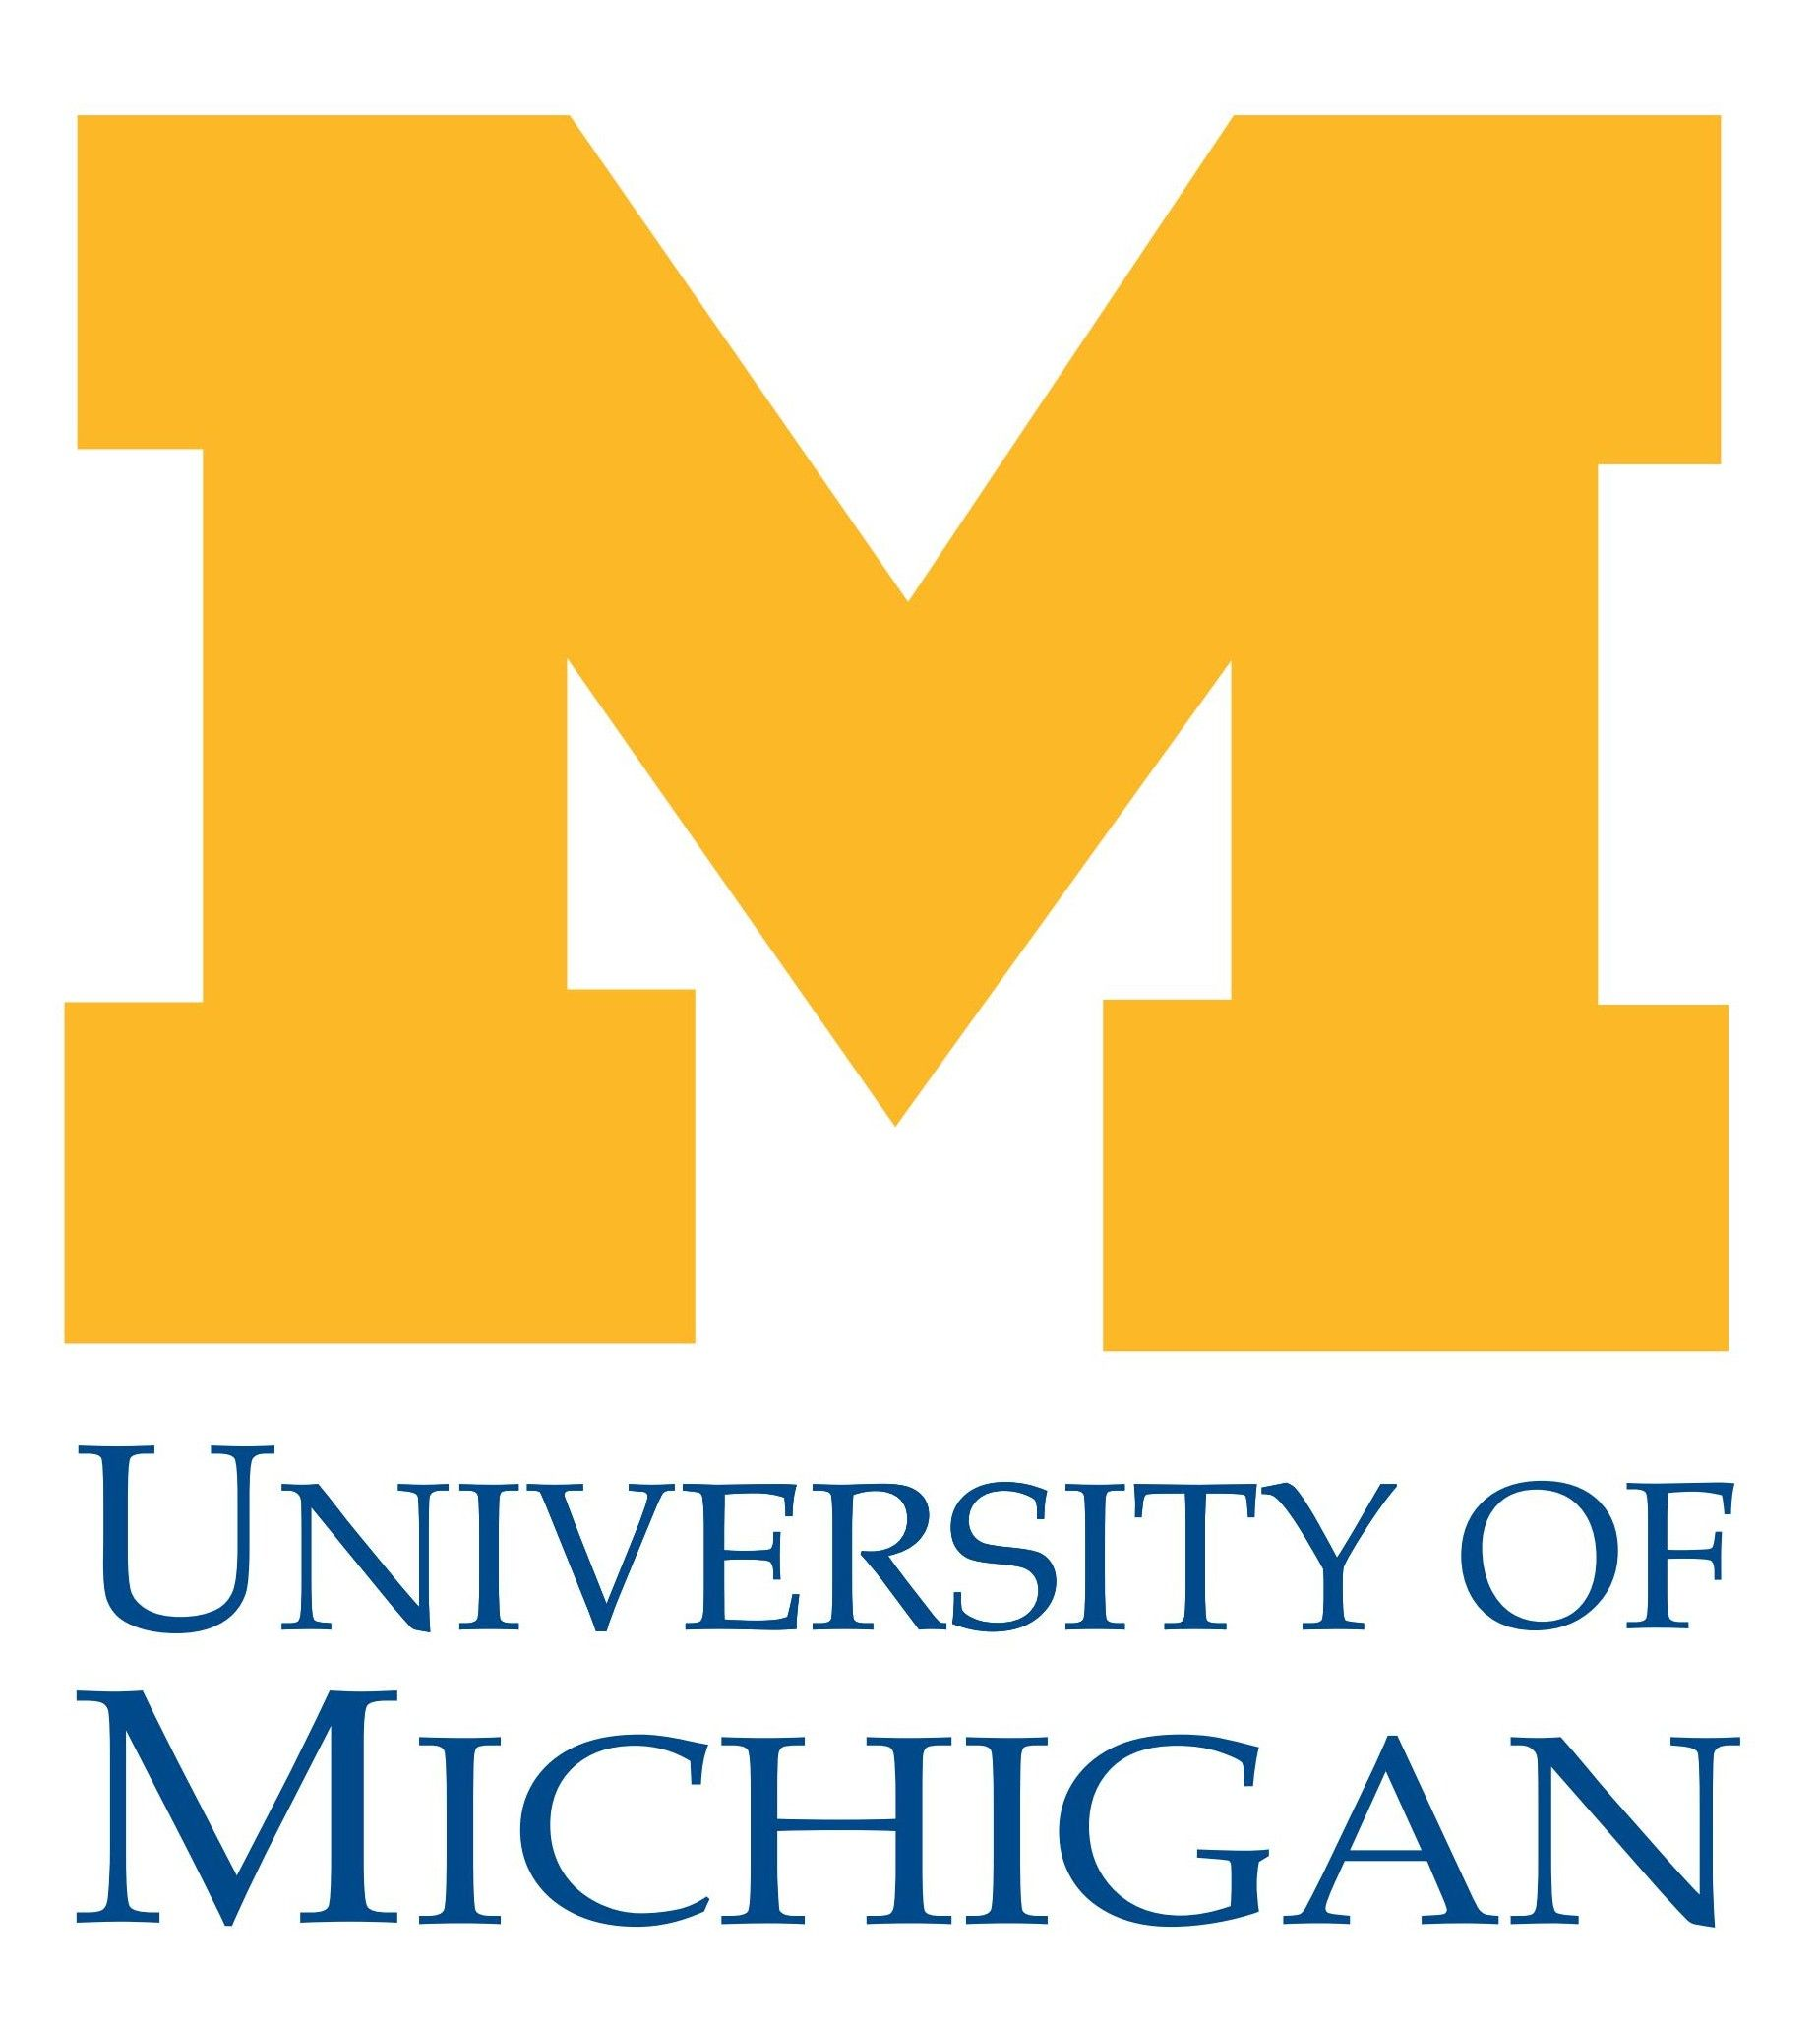 Michigan University Mr. H어드미션 에세이